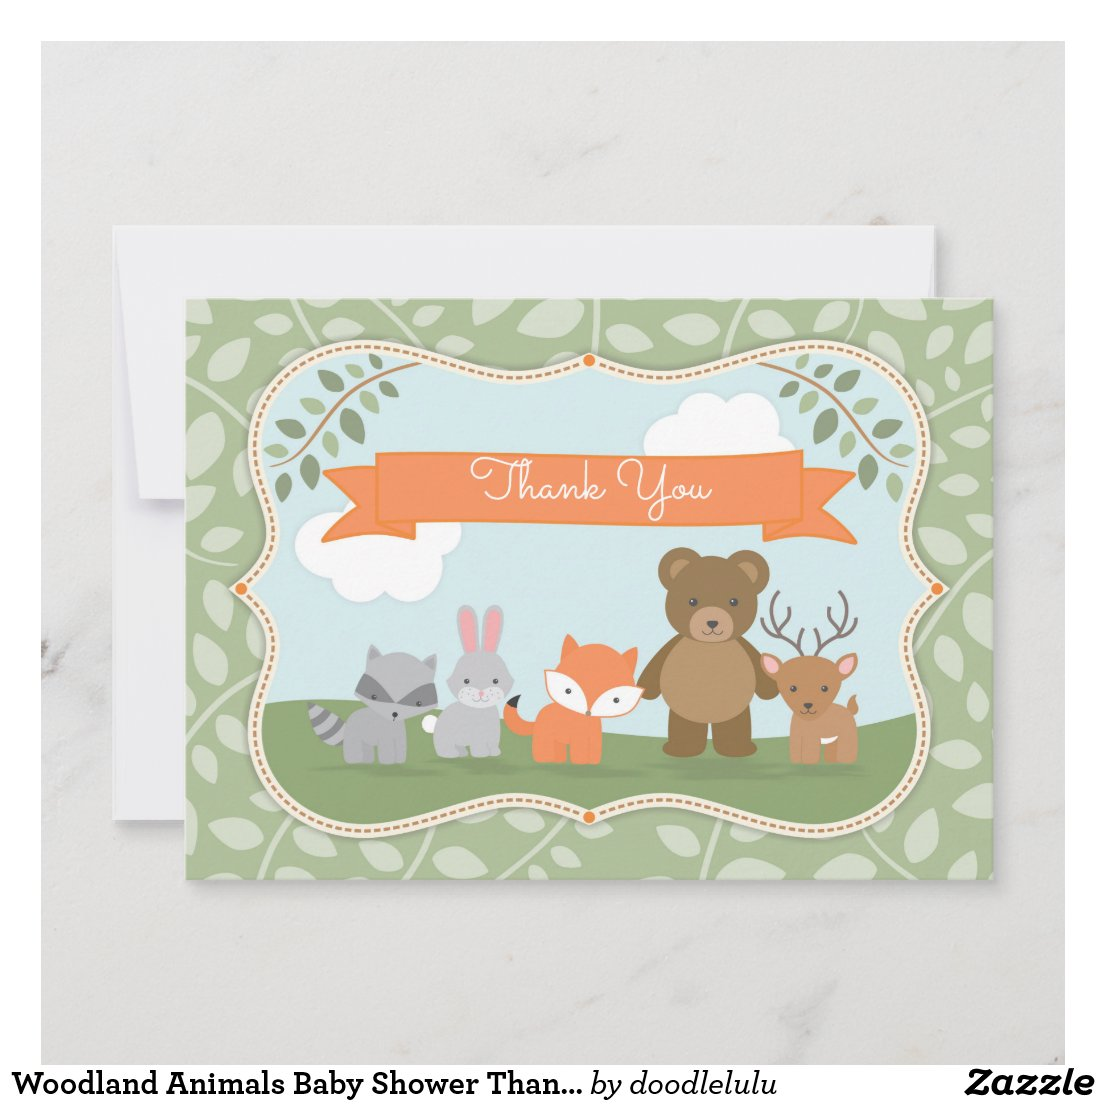 Woodland Animals Baby Shower Thank You green blue